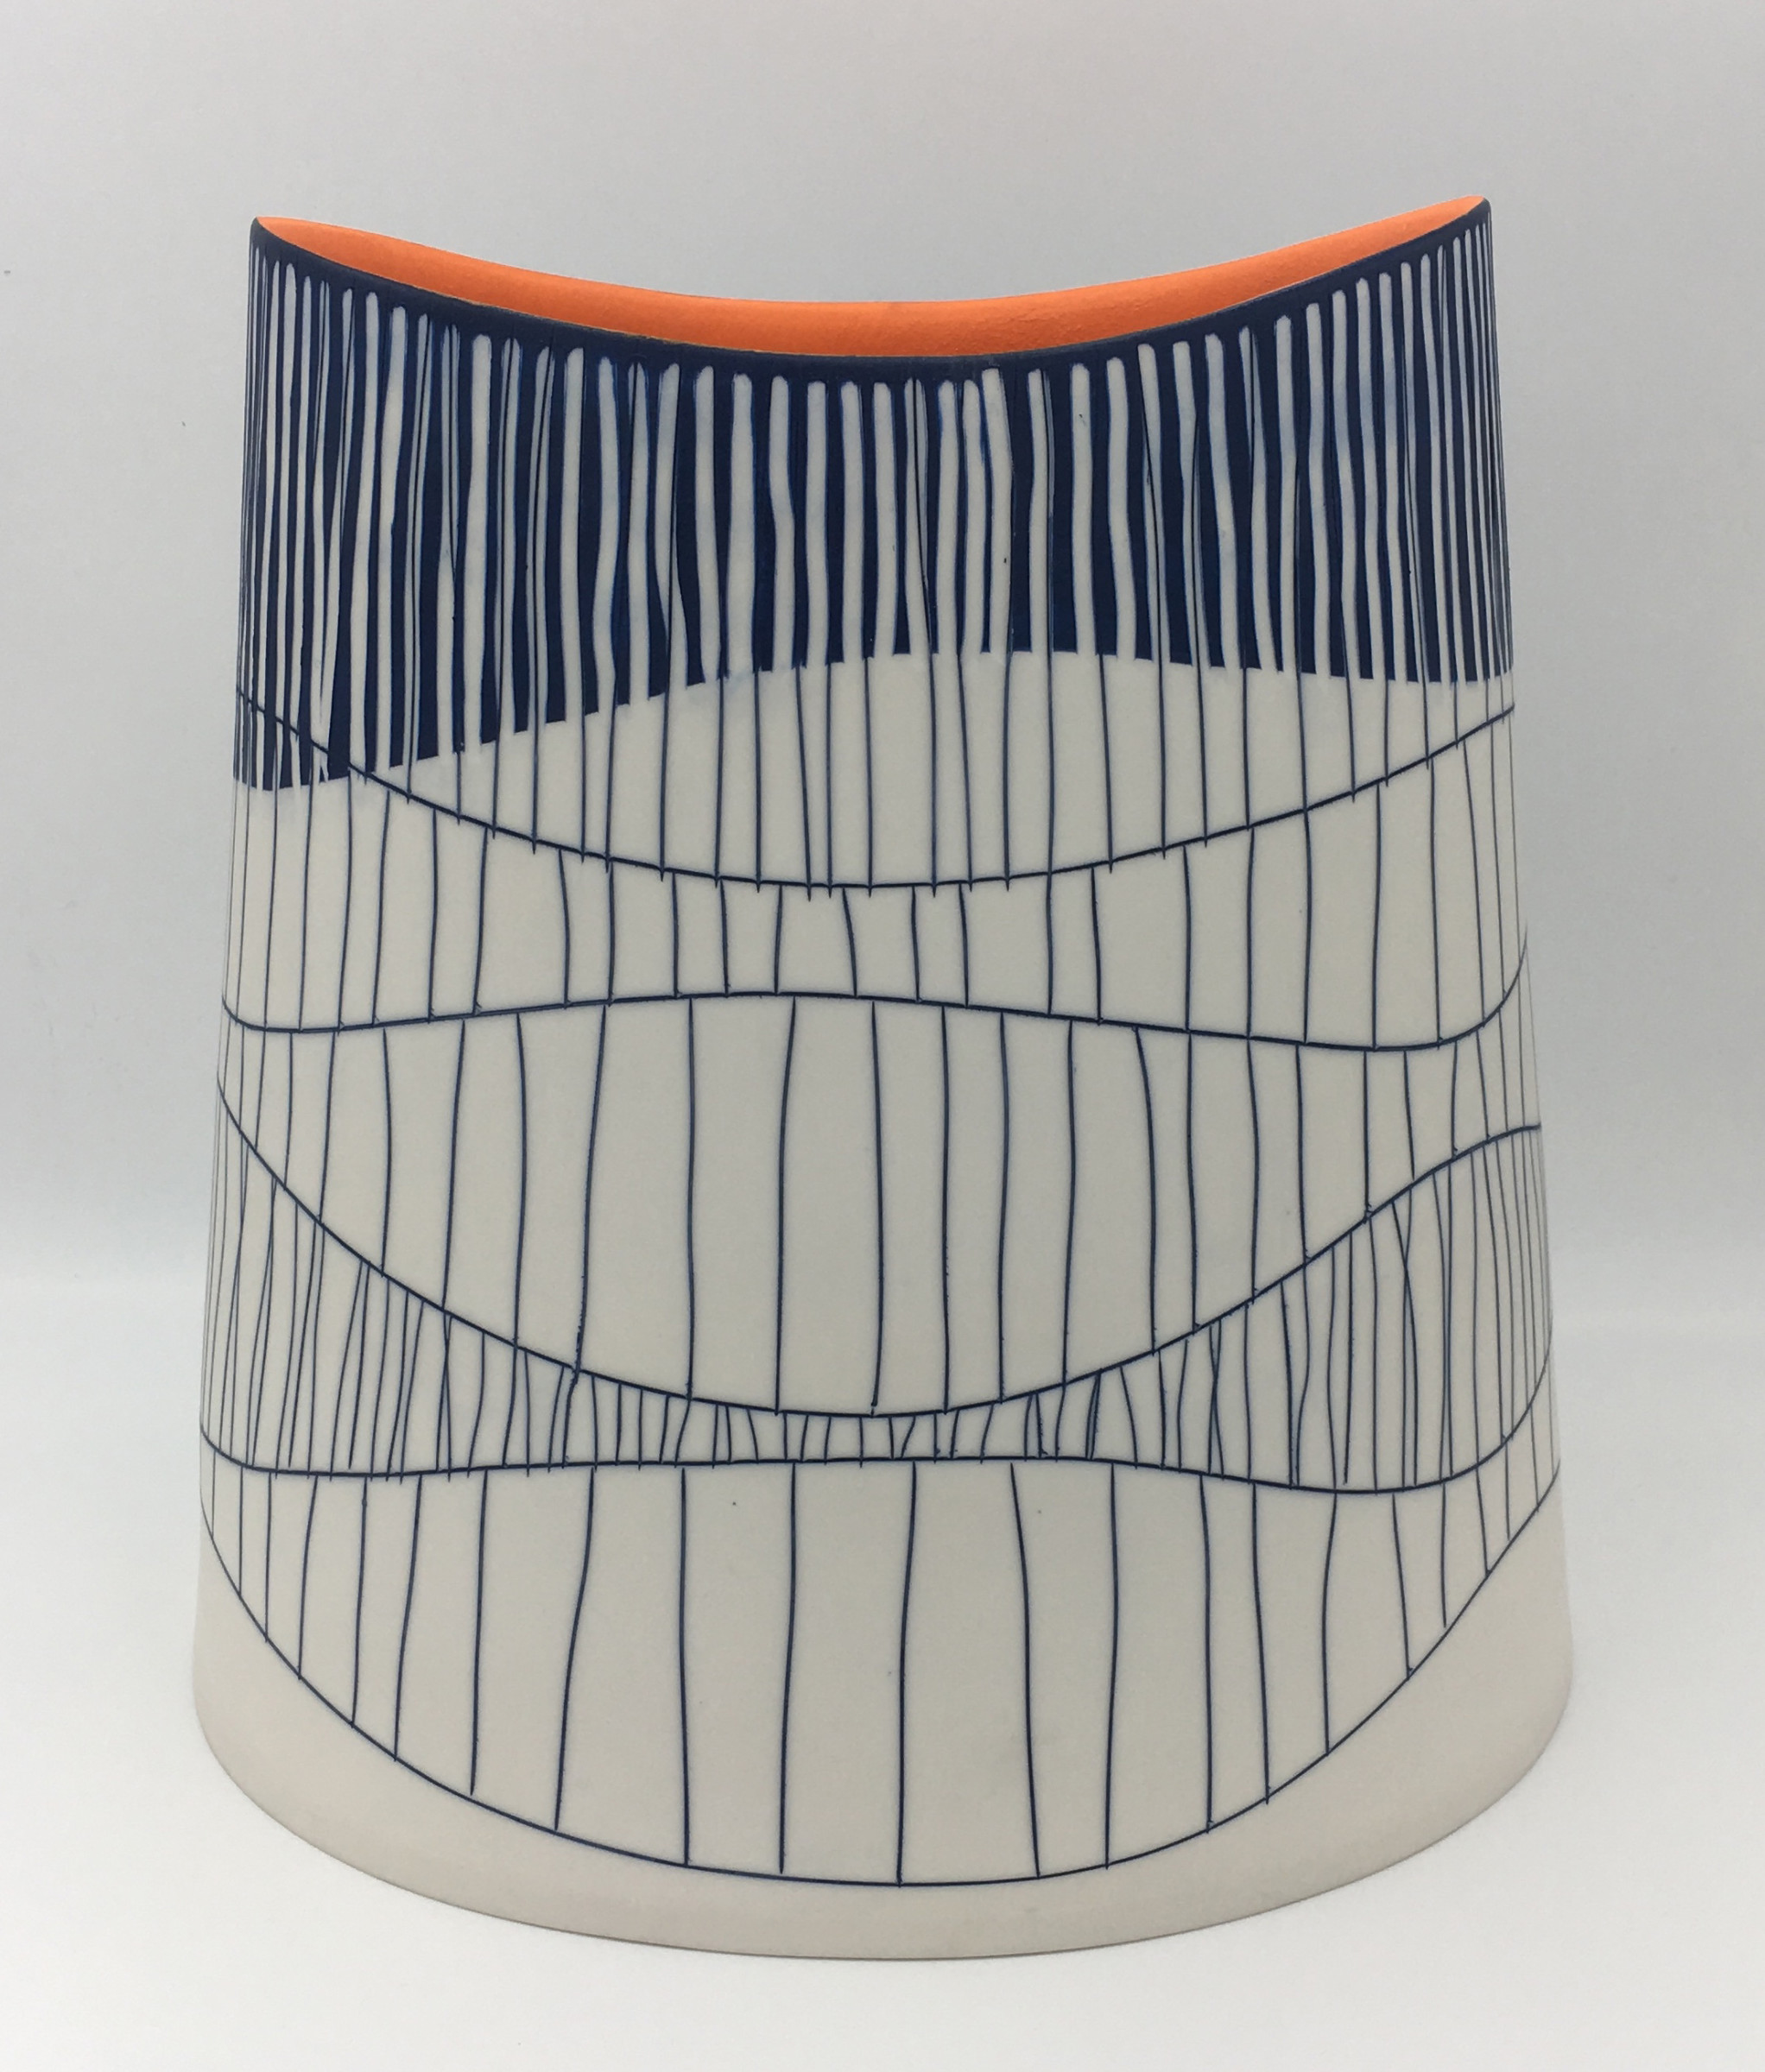 "<span class=""link fancybox-details-link""><a href=""/artists/195-lara-scobie/works/6510-lara-scobie-large-oval-vessel-with-orange-interior-2019/"">View Detail Page</a></span><div class=""artist""><strong>Lara Scobie</strong></div> <div class=""title""><em>Large Oval Vessel with Orange Interior</em>, 2019</div> <div class=""medium"">Porcelain</div><div class=""copyright_line"">Own Art: £95 x 10 Months, 0% APR</div>"